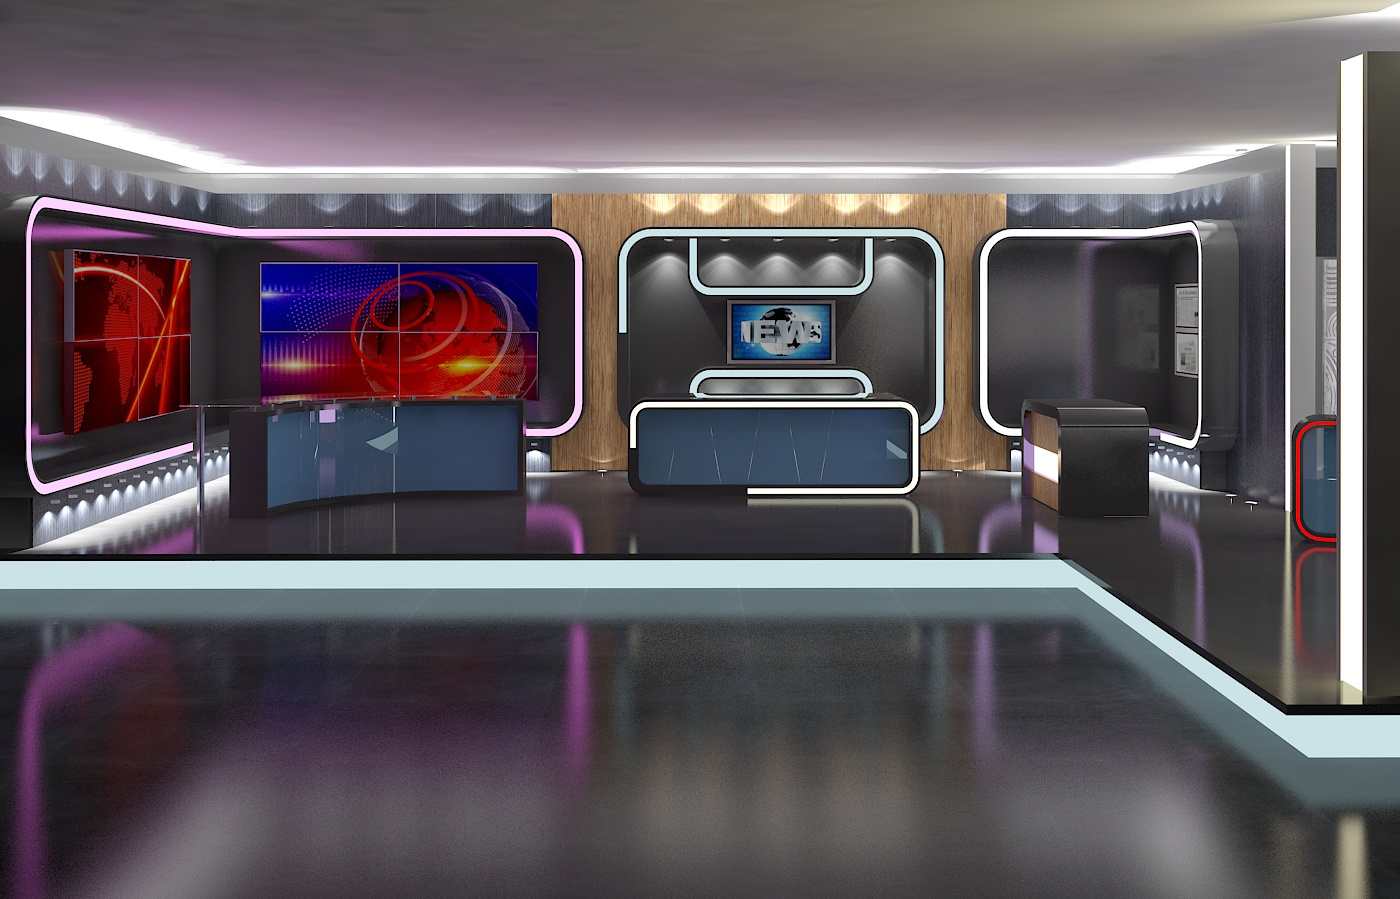 3d Virtual Tv Studio News Set 16 By Canan85 3docean